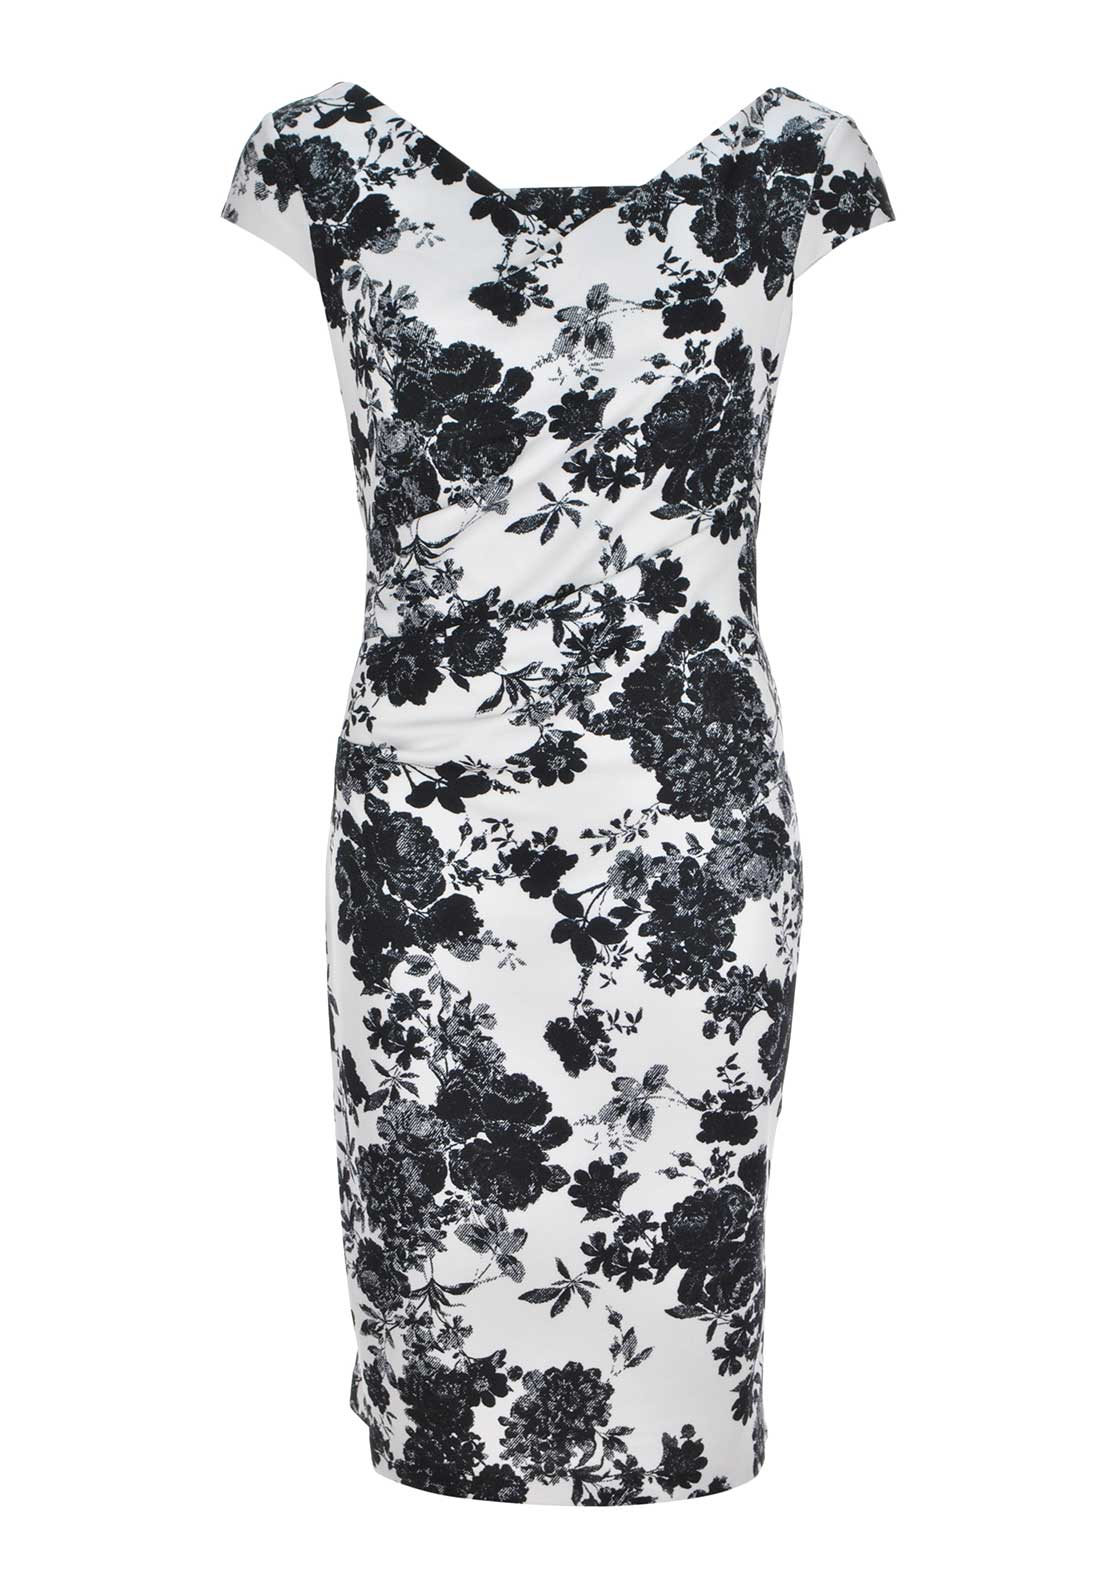 Gina Bacconi Floral Print Jersey Pencil Dress, White and Black